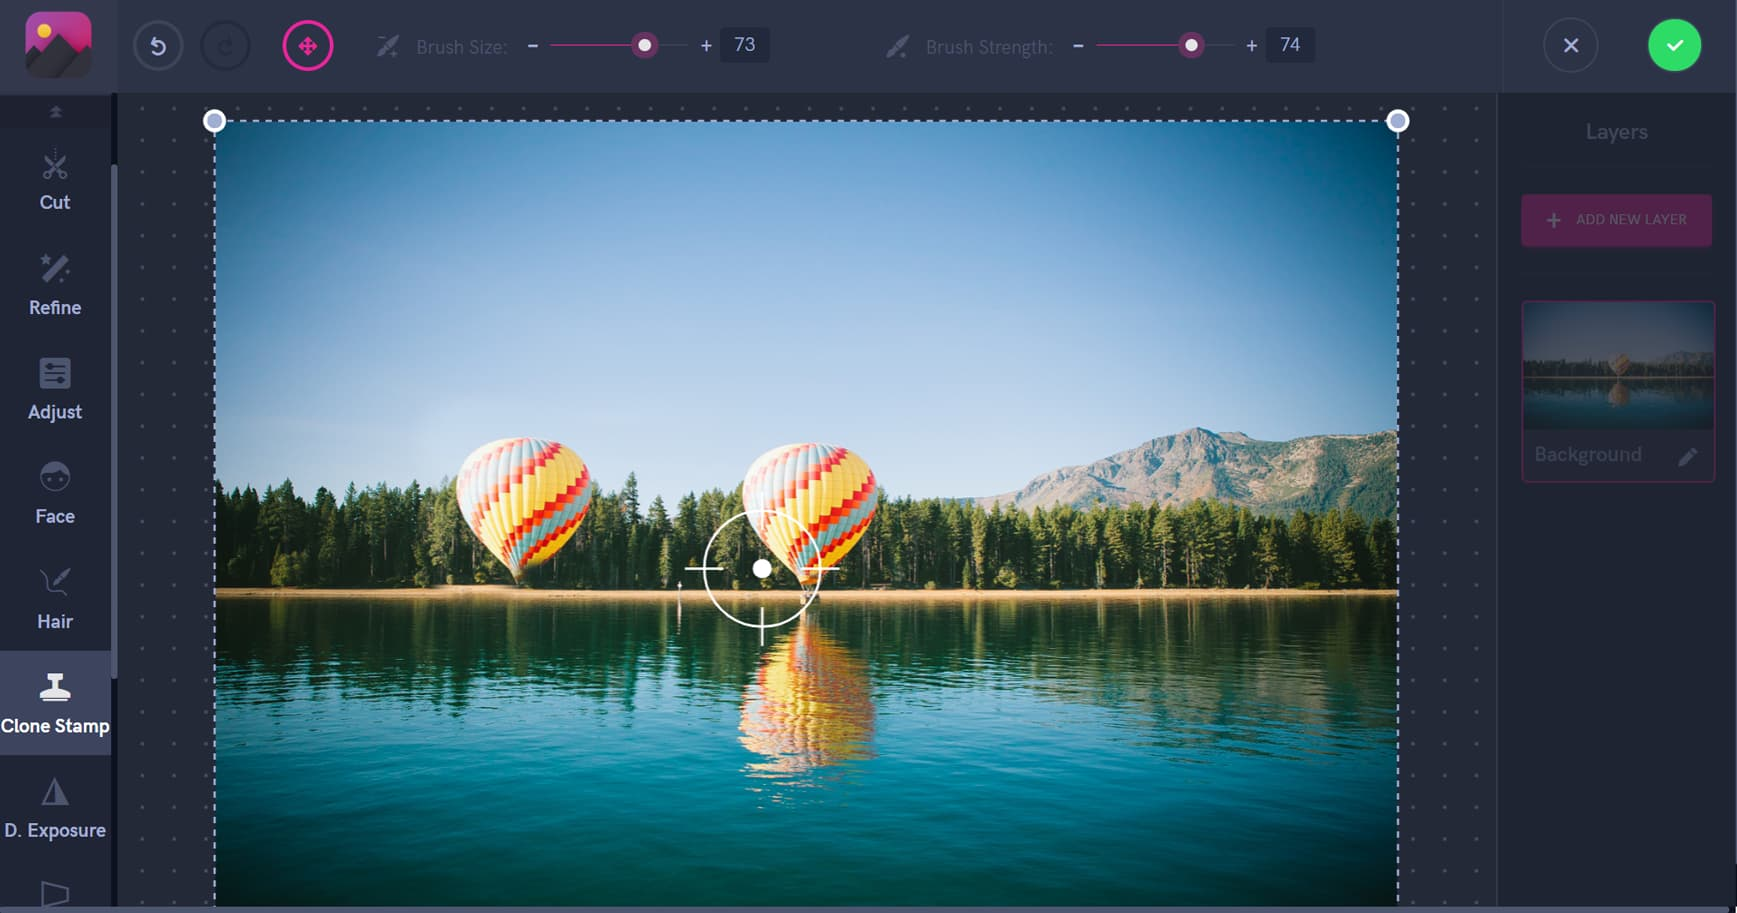 Clone stamp tool, Pixomatic screenshot, cloning an air balloon